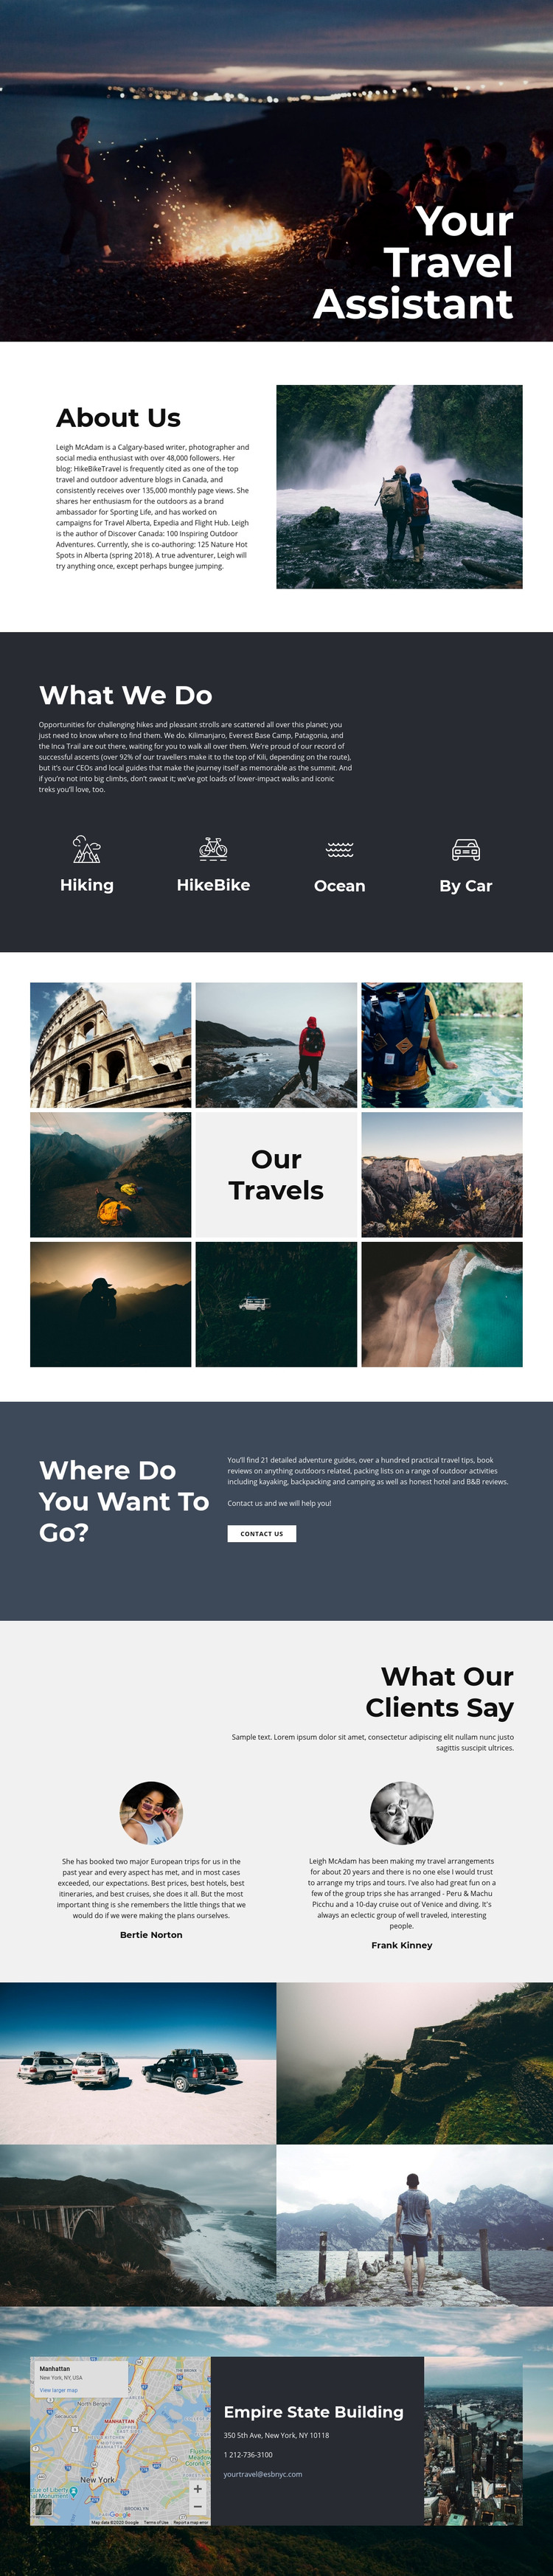 Travel Assistant Homepage Design